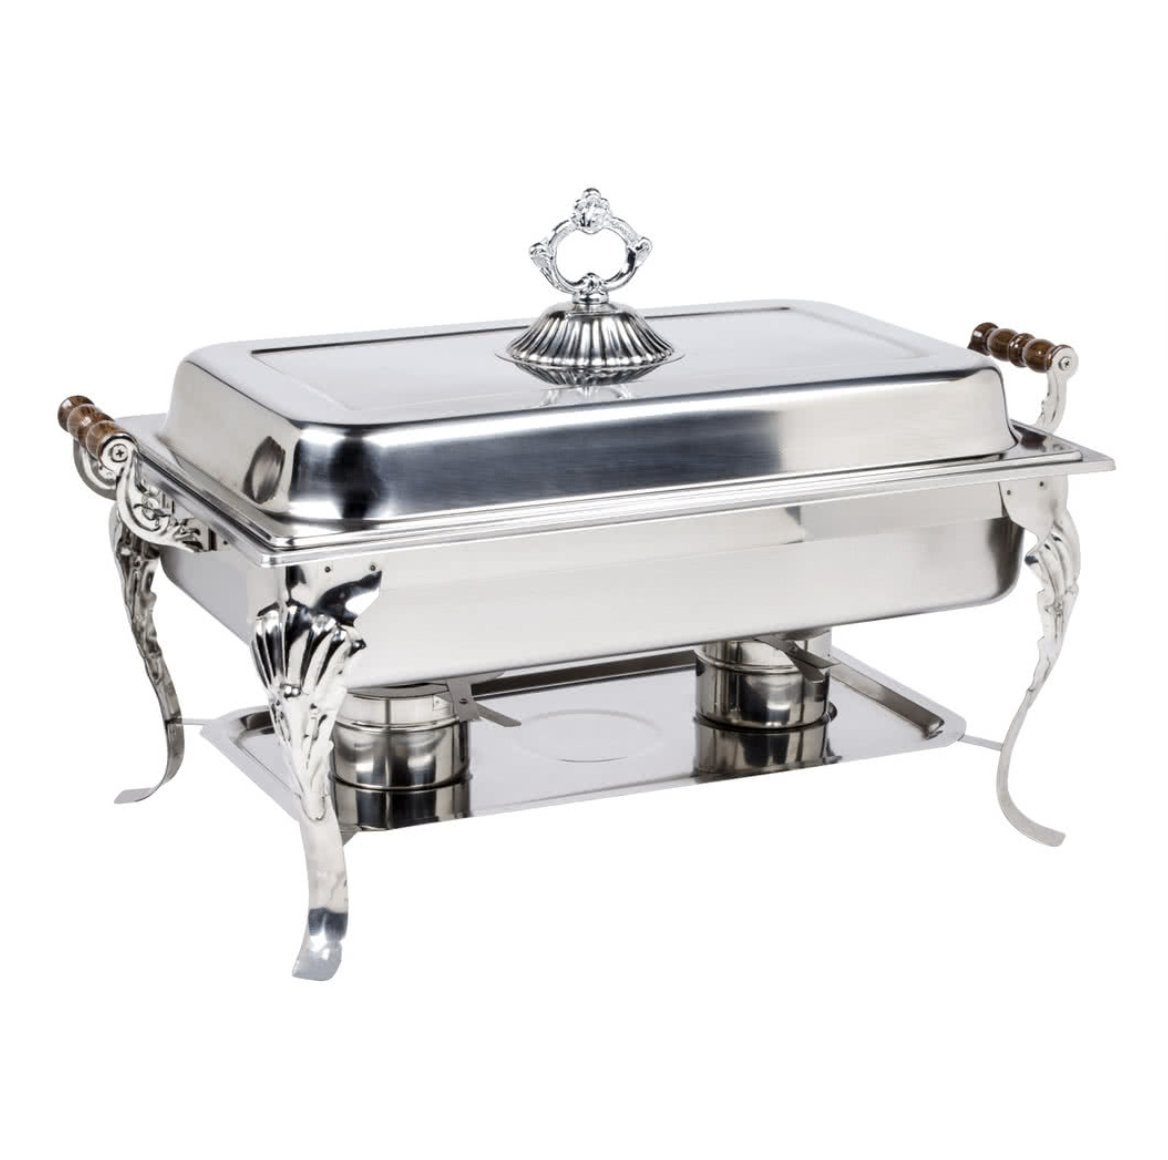 4PACK Classic Rectangle 8 Qt. Stainless Steel Full Size Chafing Dish by HEDY4LESS (Image #2)